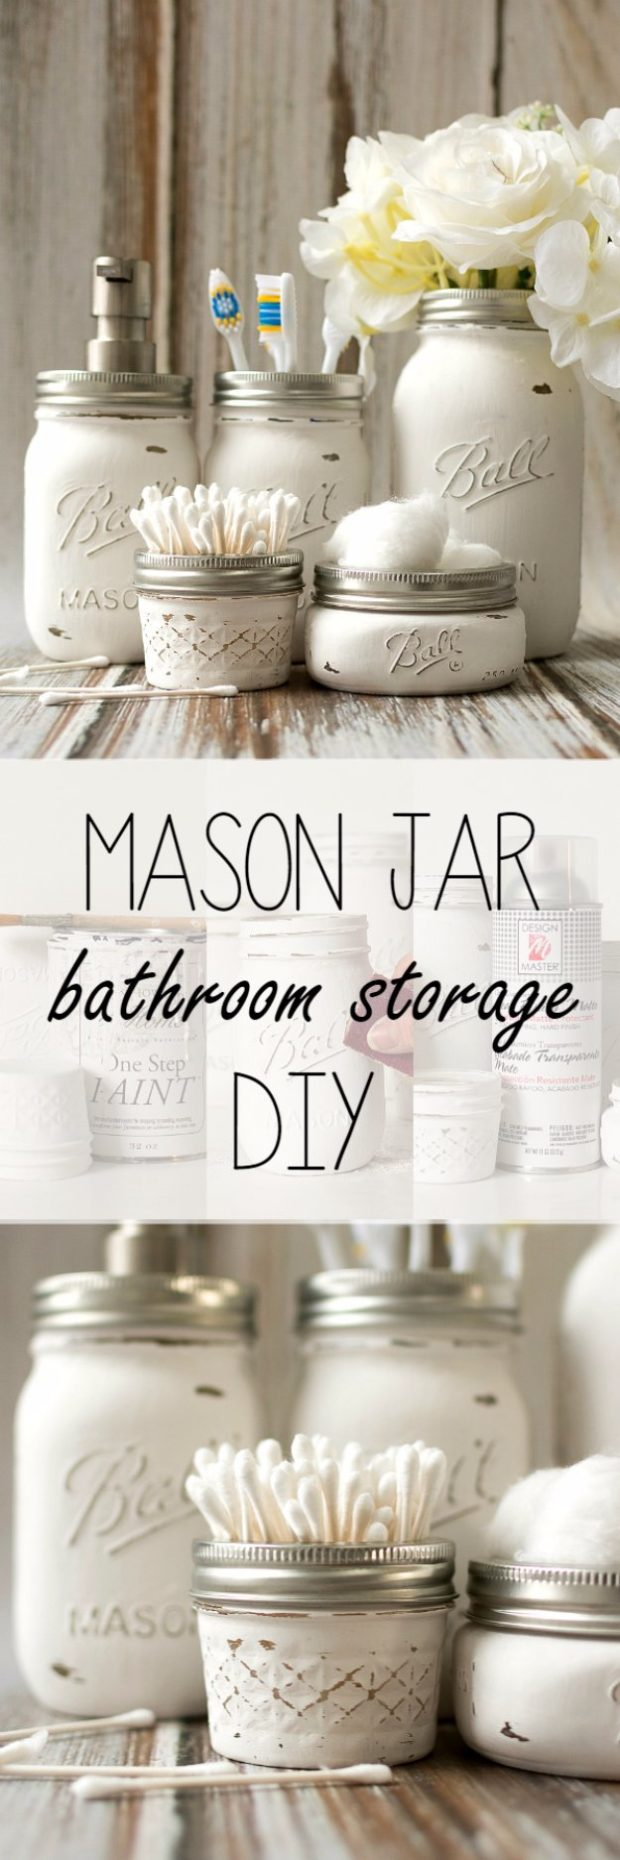 15 Genius DIY Ideas To Improve Your Bathroom For Free (1)